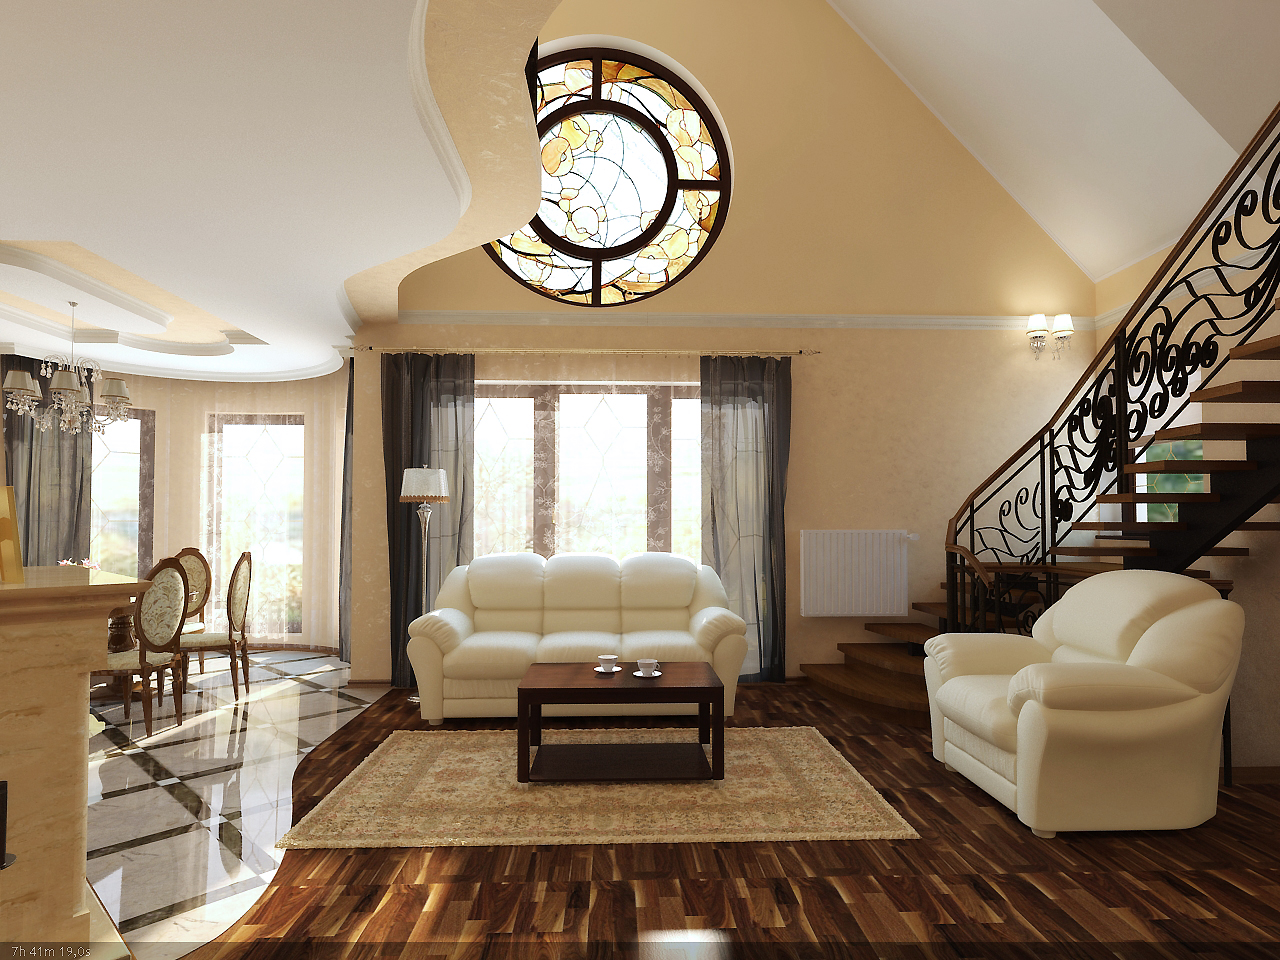 Frequently Asked Questions About Interior Decorating